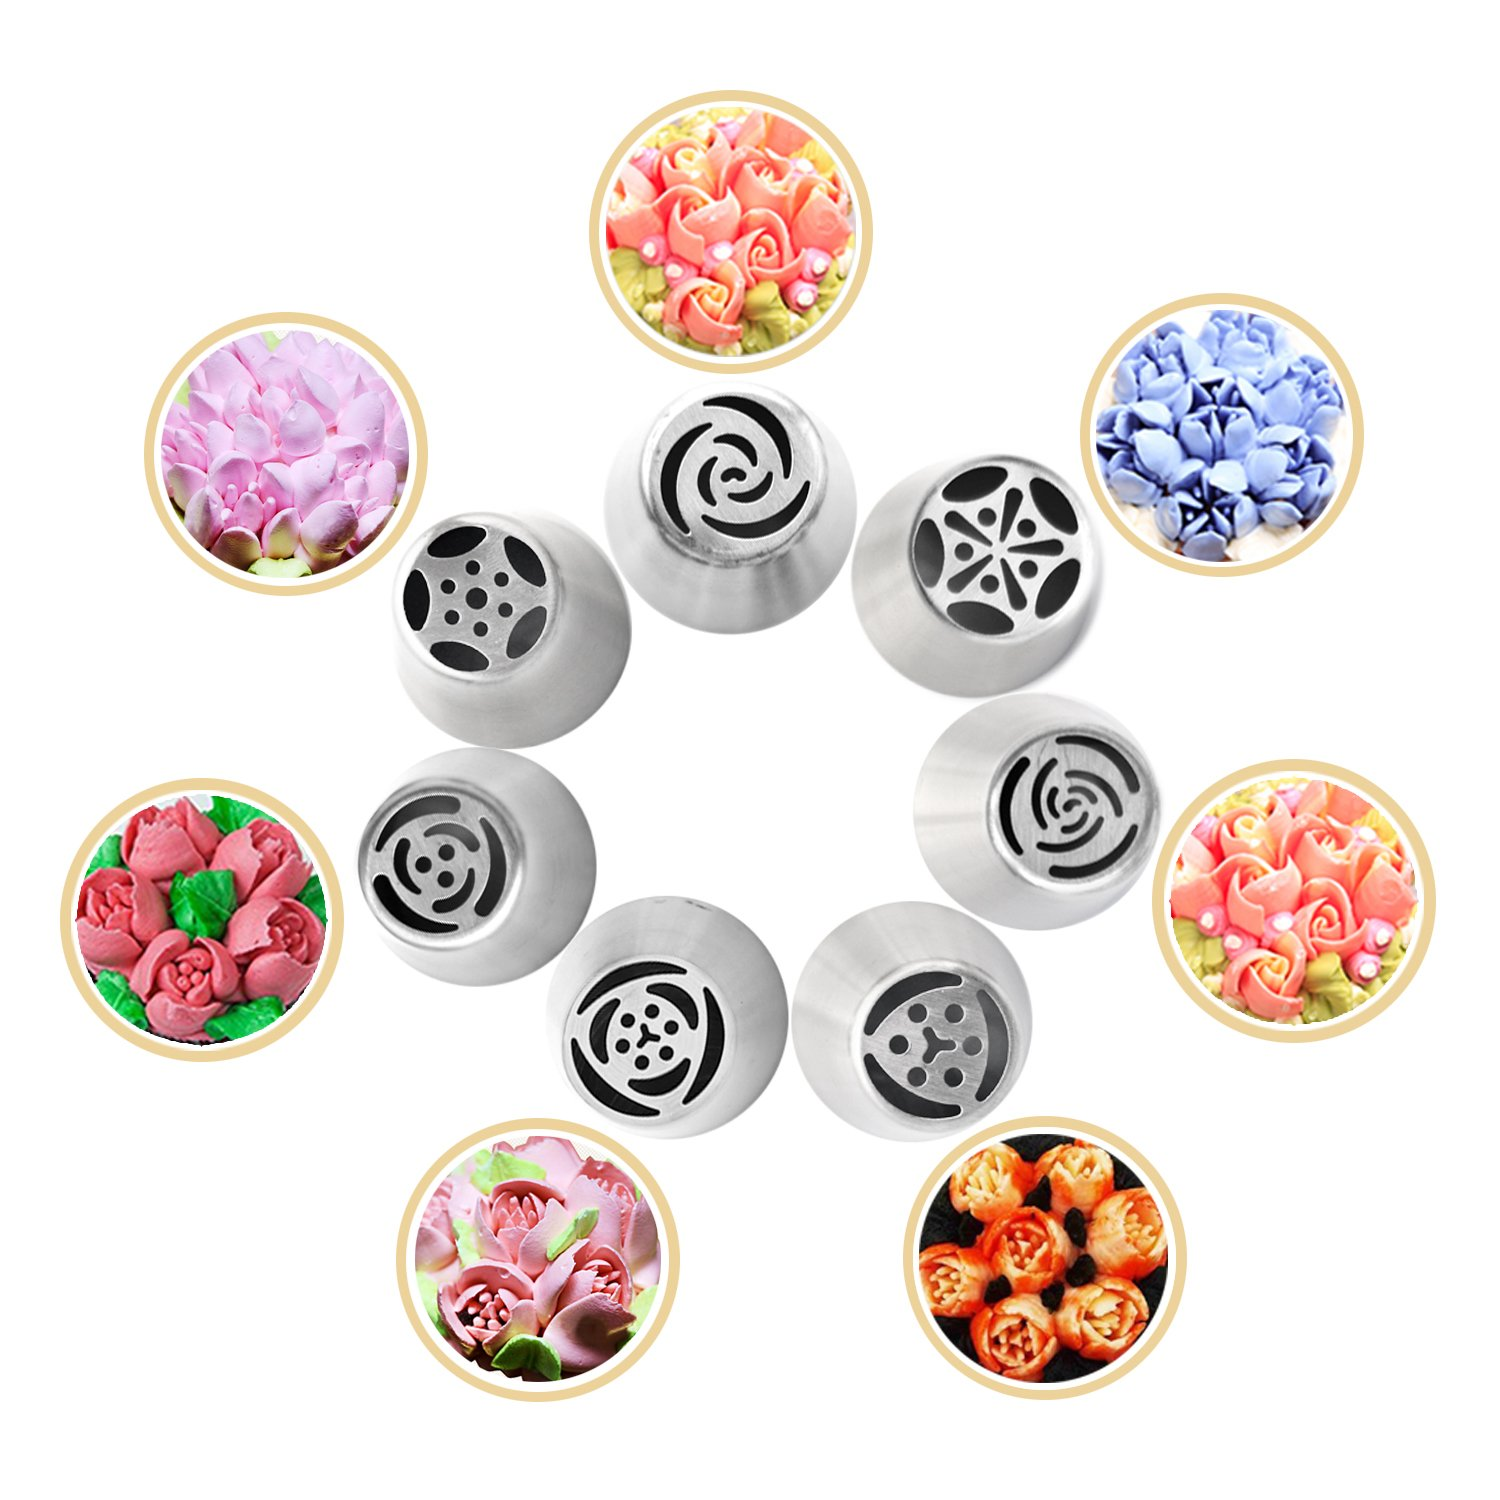 7Pcs Russian Piping Tips for Cake Baking Supplies, Professional Stainless Steel DIY Icing Tip Set Tools with Large Size, Cake Decorating Tips e-sports Biaohuazui-1